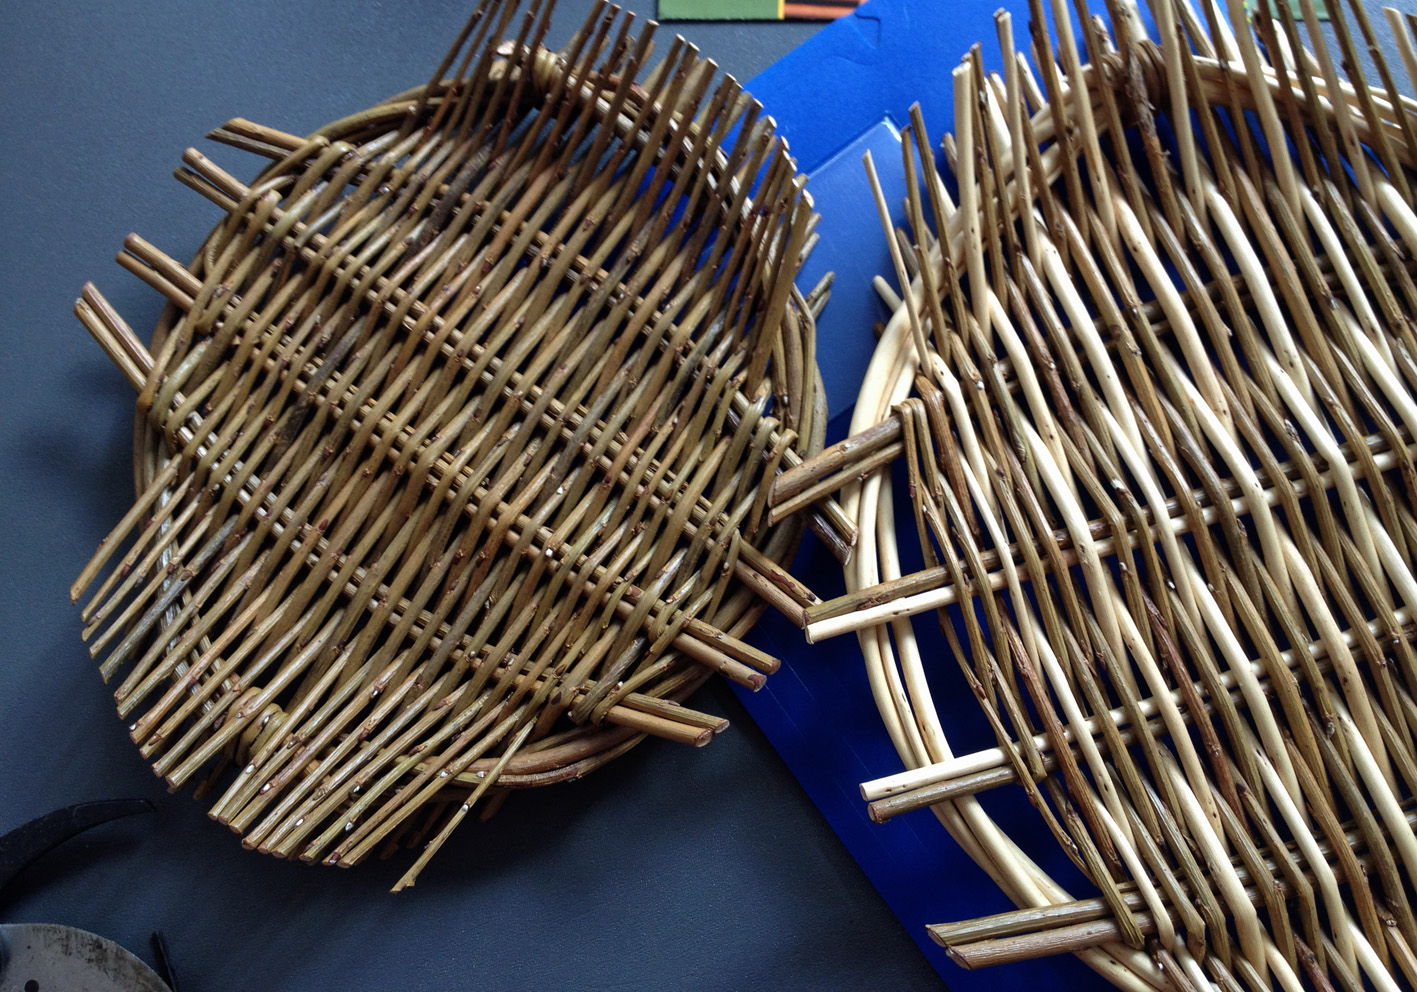 Simple Basket Weaving Willow : Musings in the moment wonderful willow weaving work